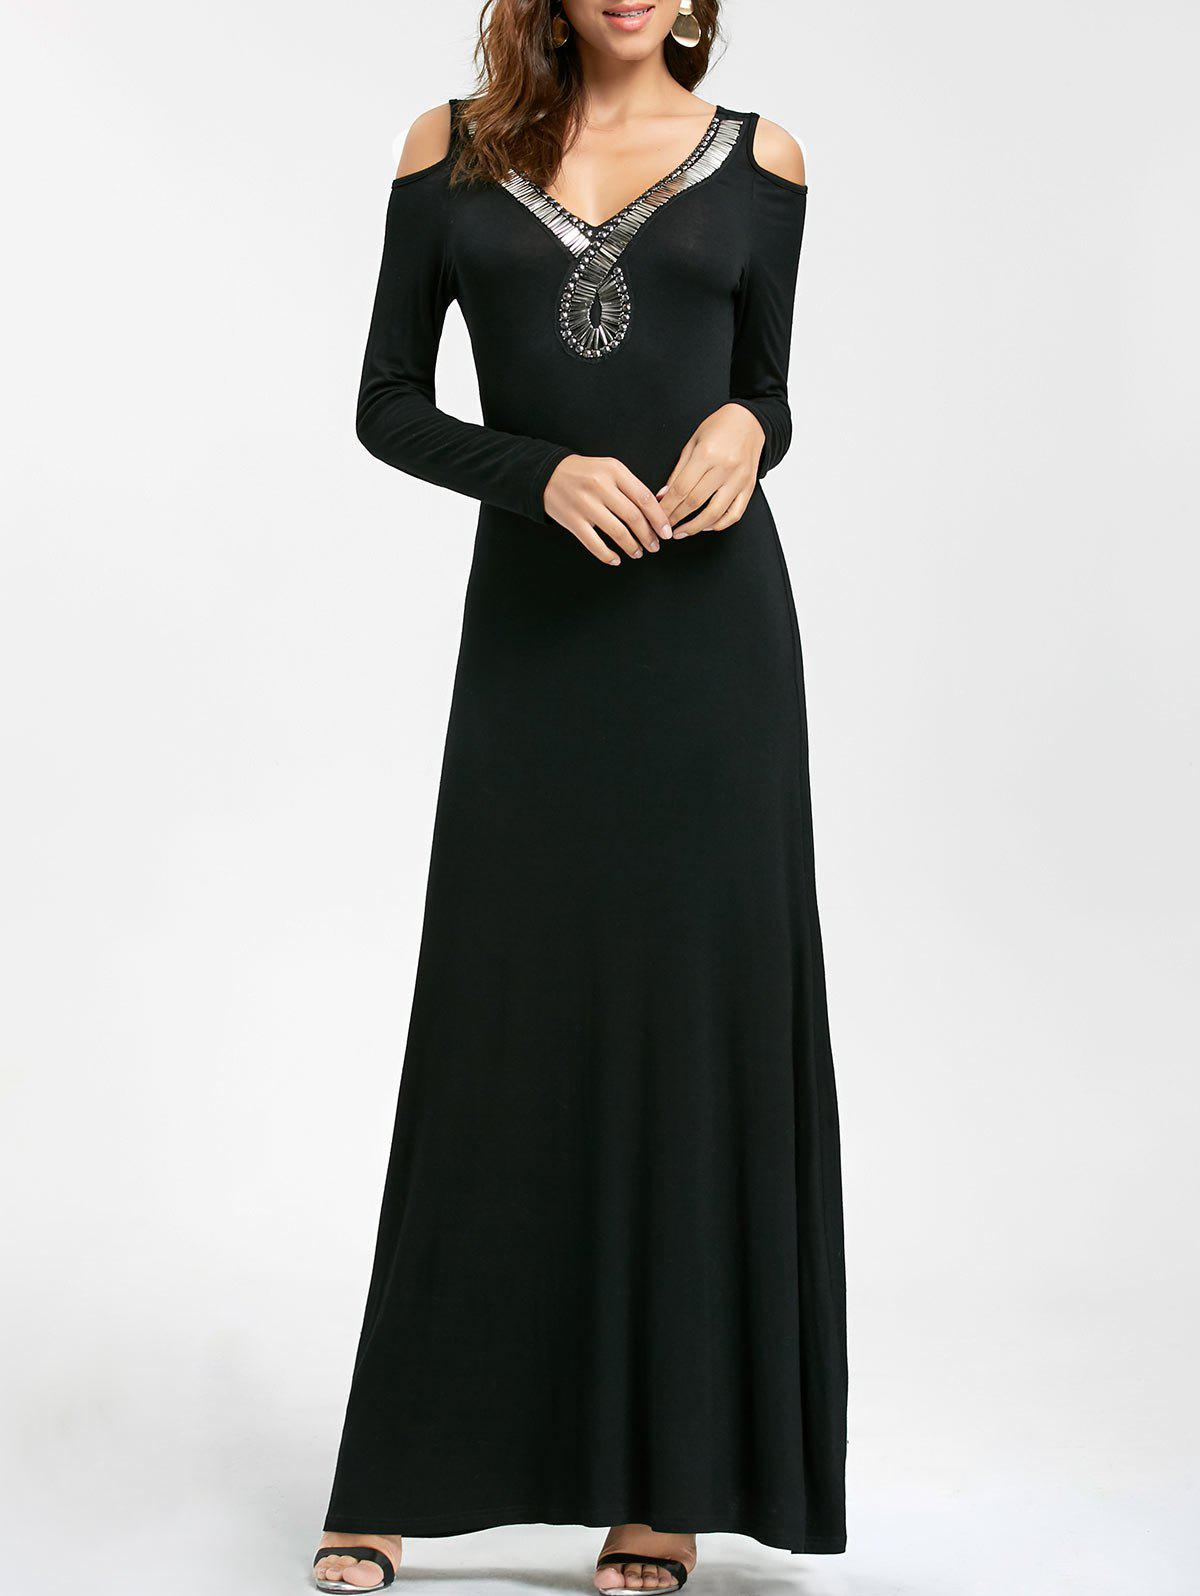 Discount Long Sleeve Cold Shoulder Engagement Party Dress